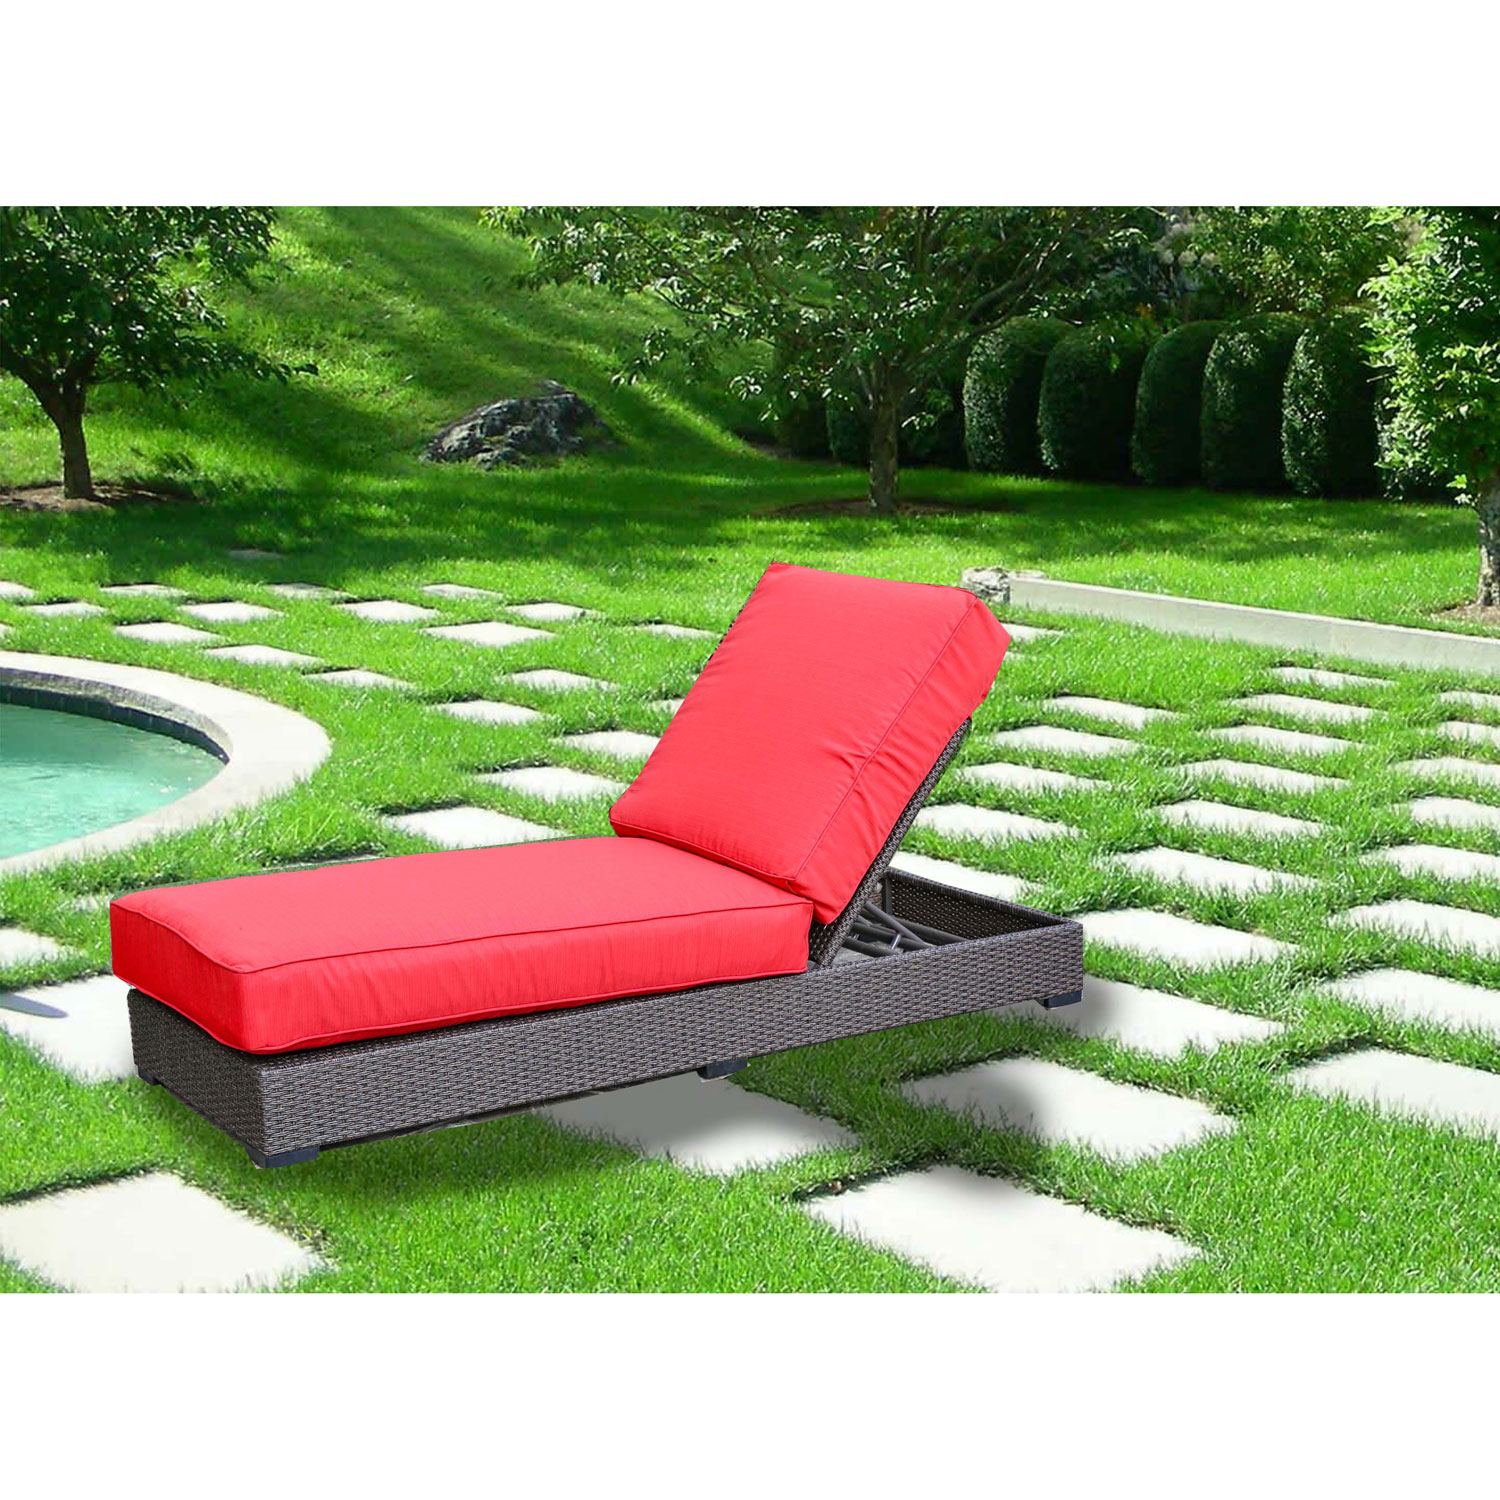 Tropea Chaise Patio Lounge Chair Candy Red Buckeye Brown ly